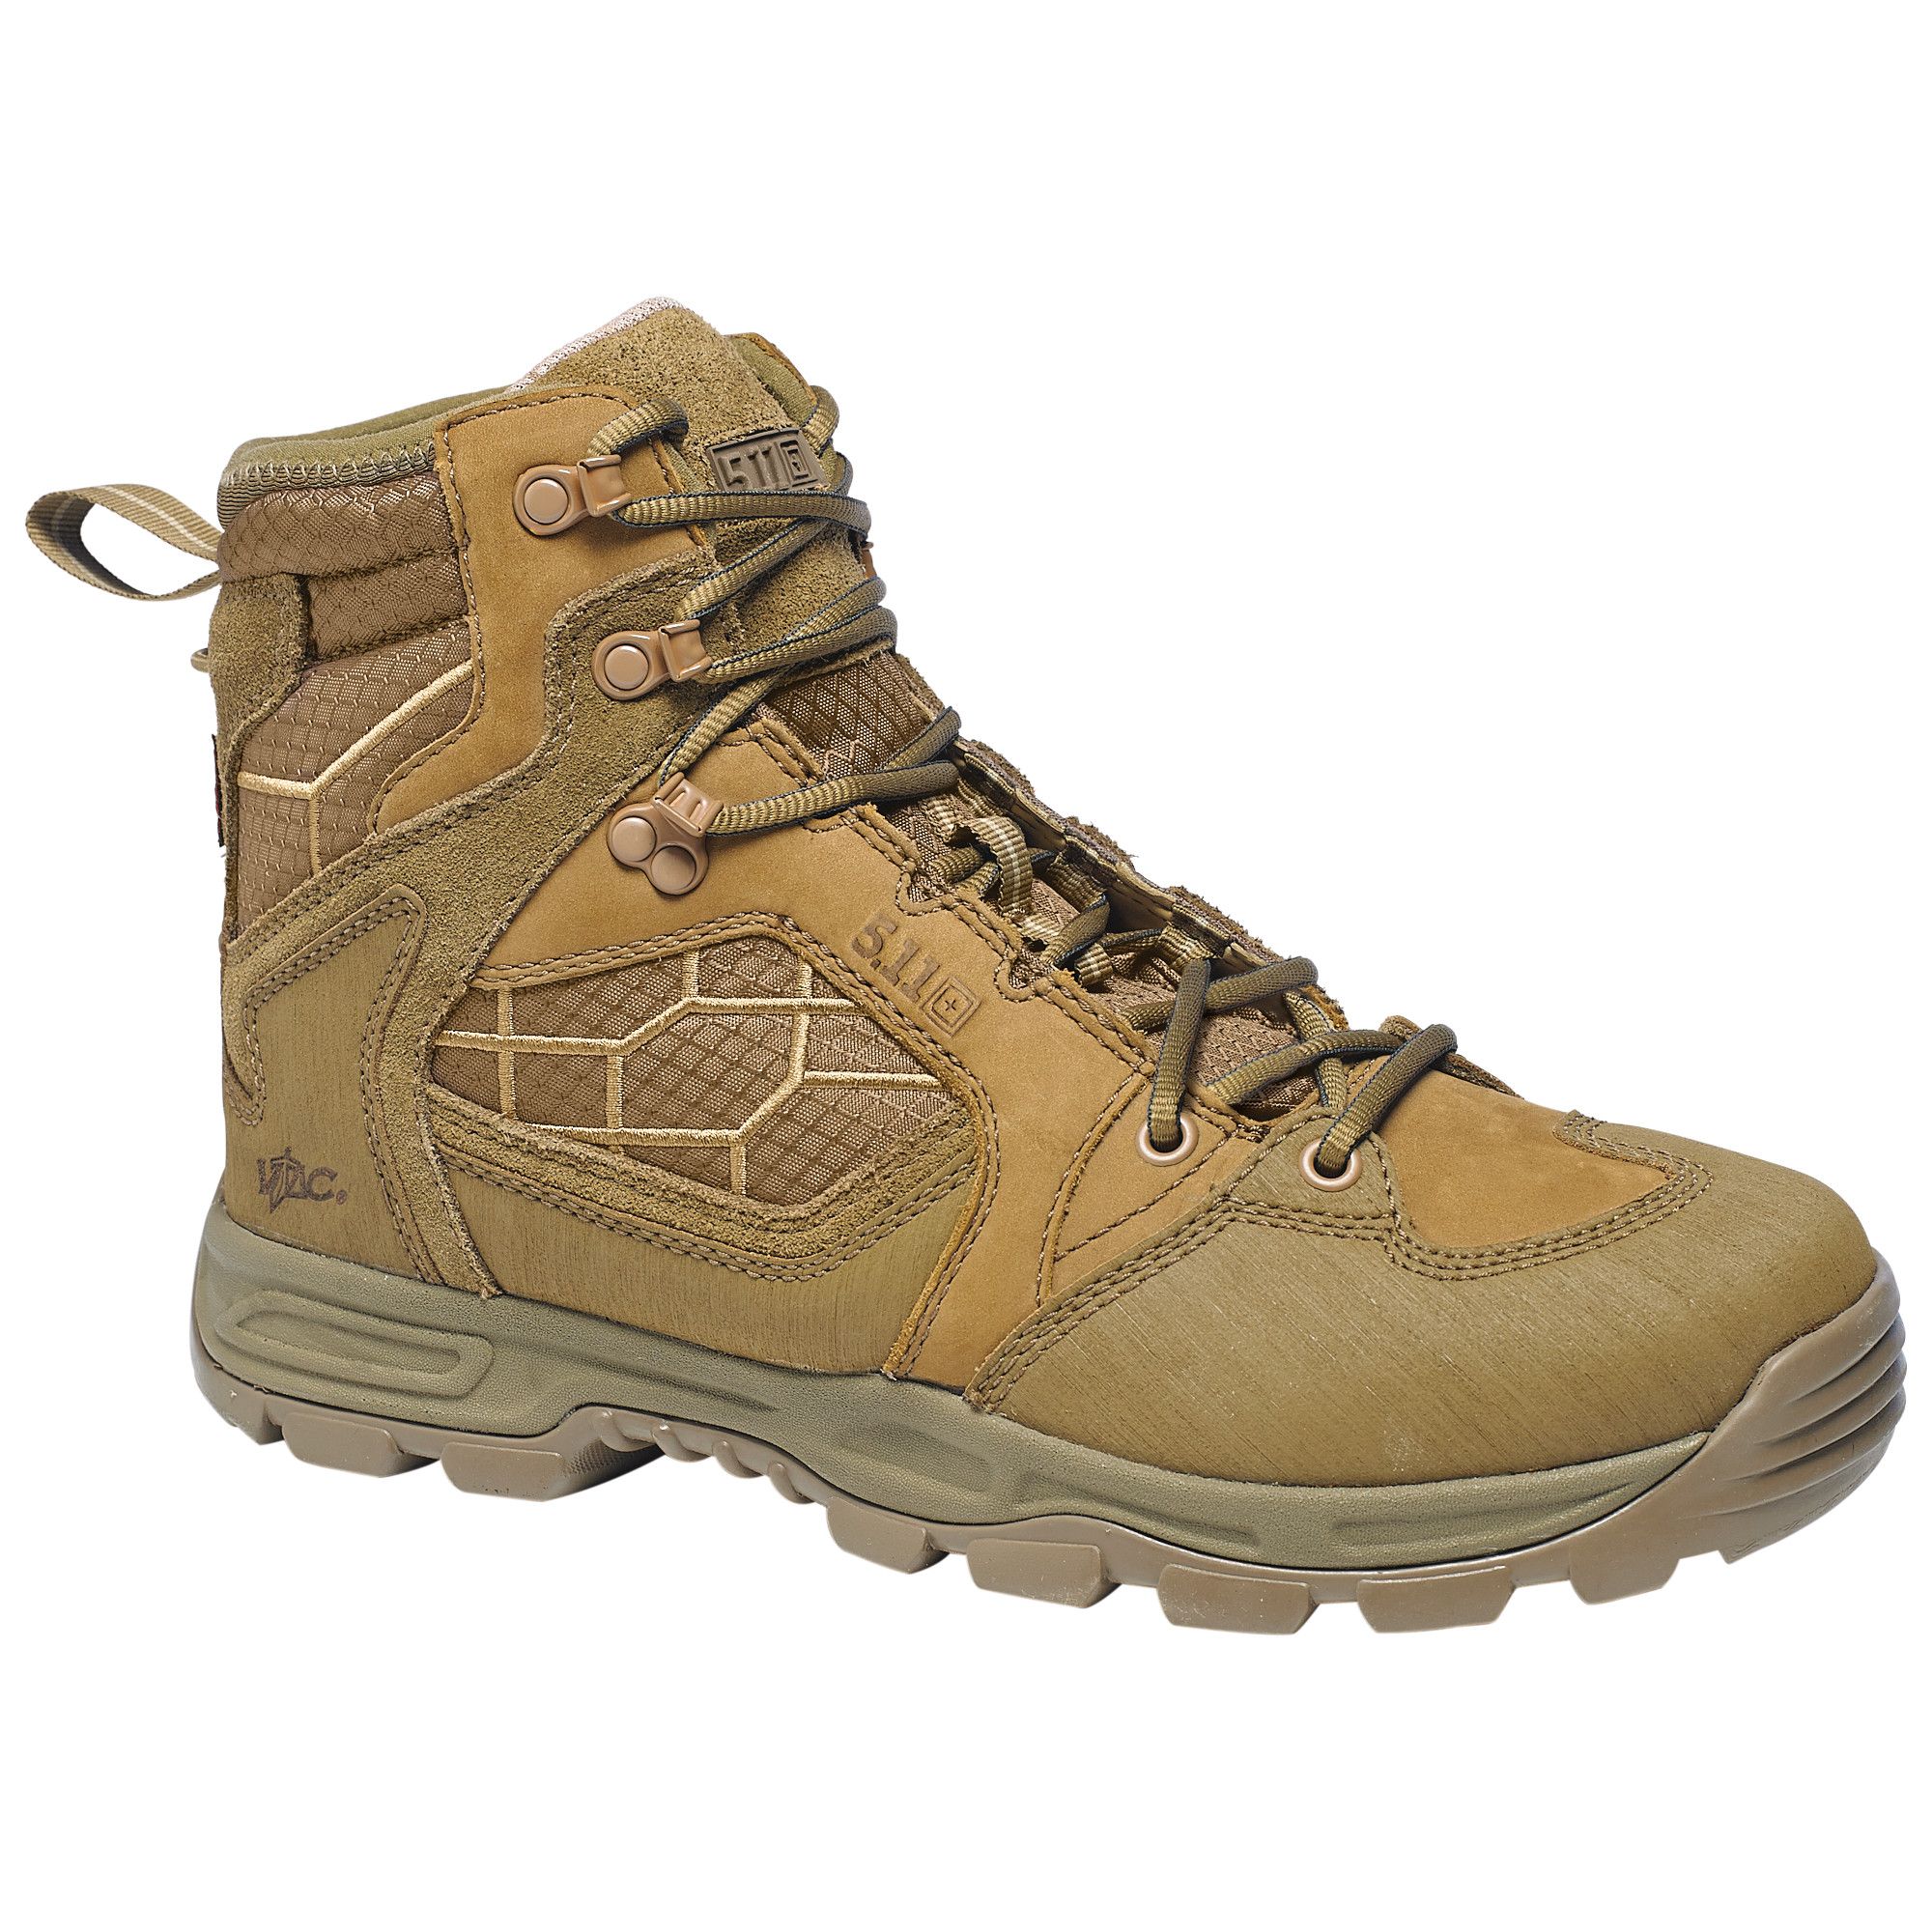 5.11 XPRT 2.0 Desert Tactical Boot 12303